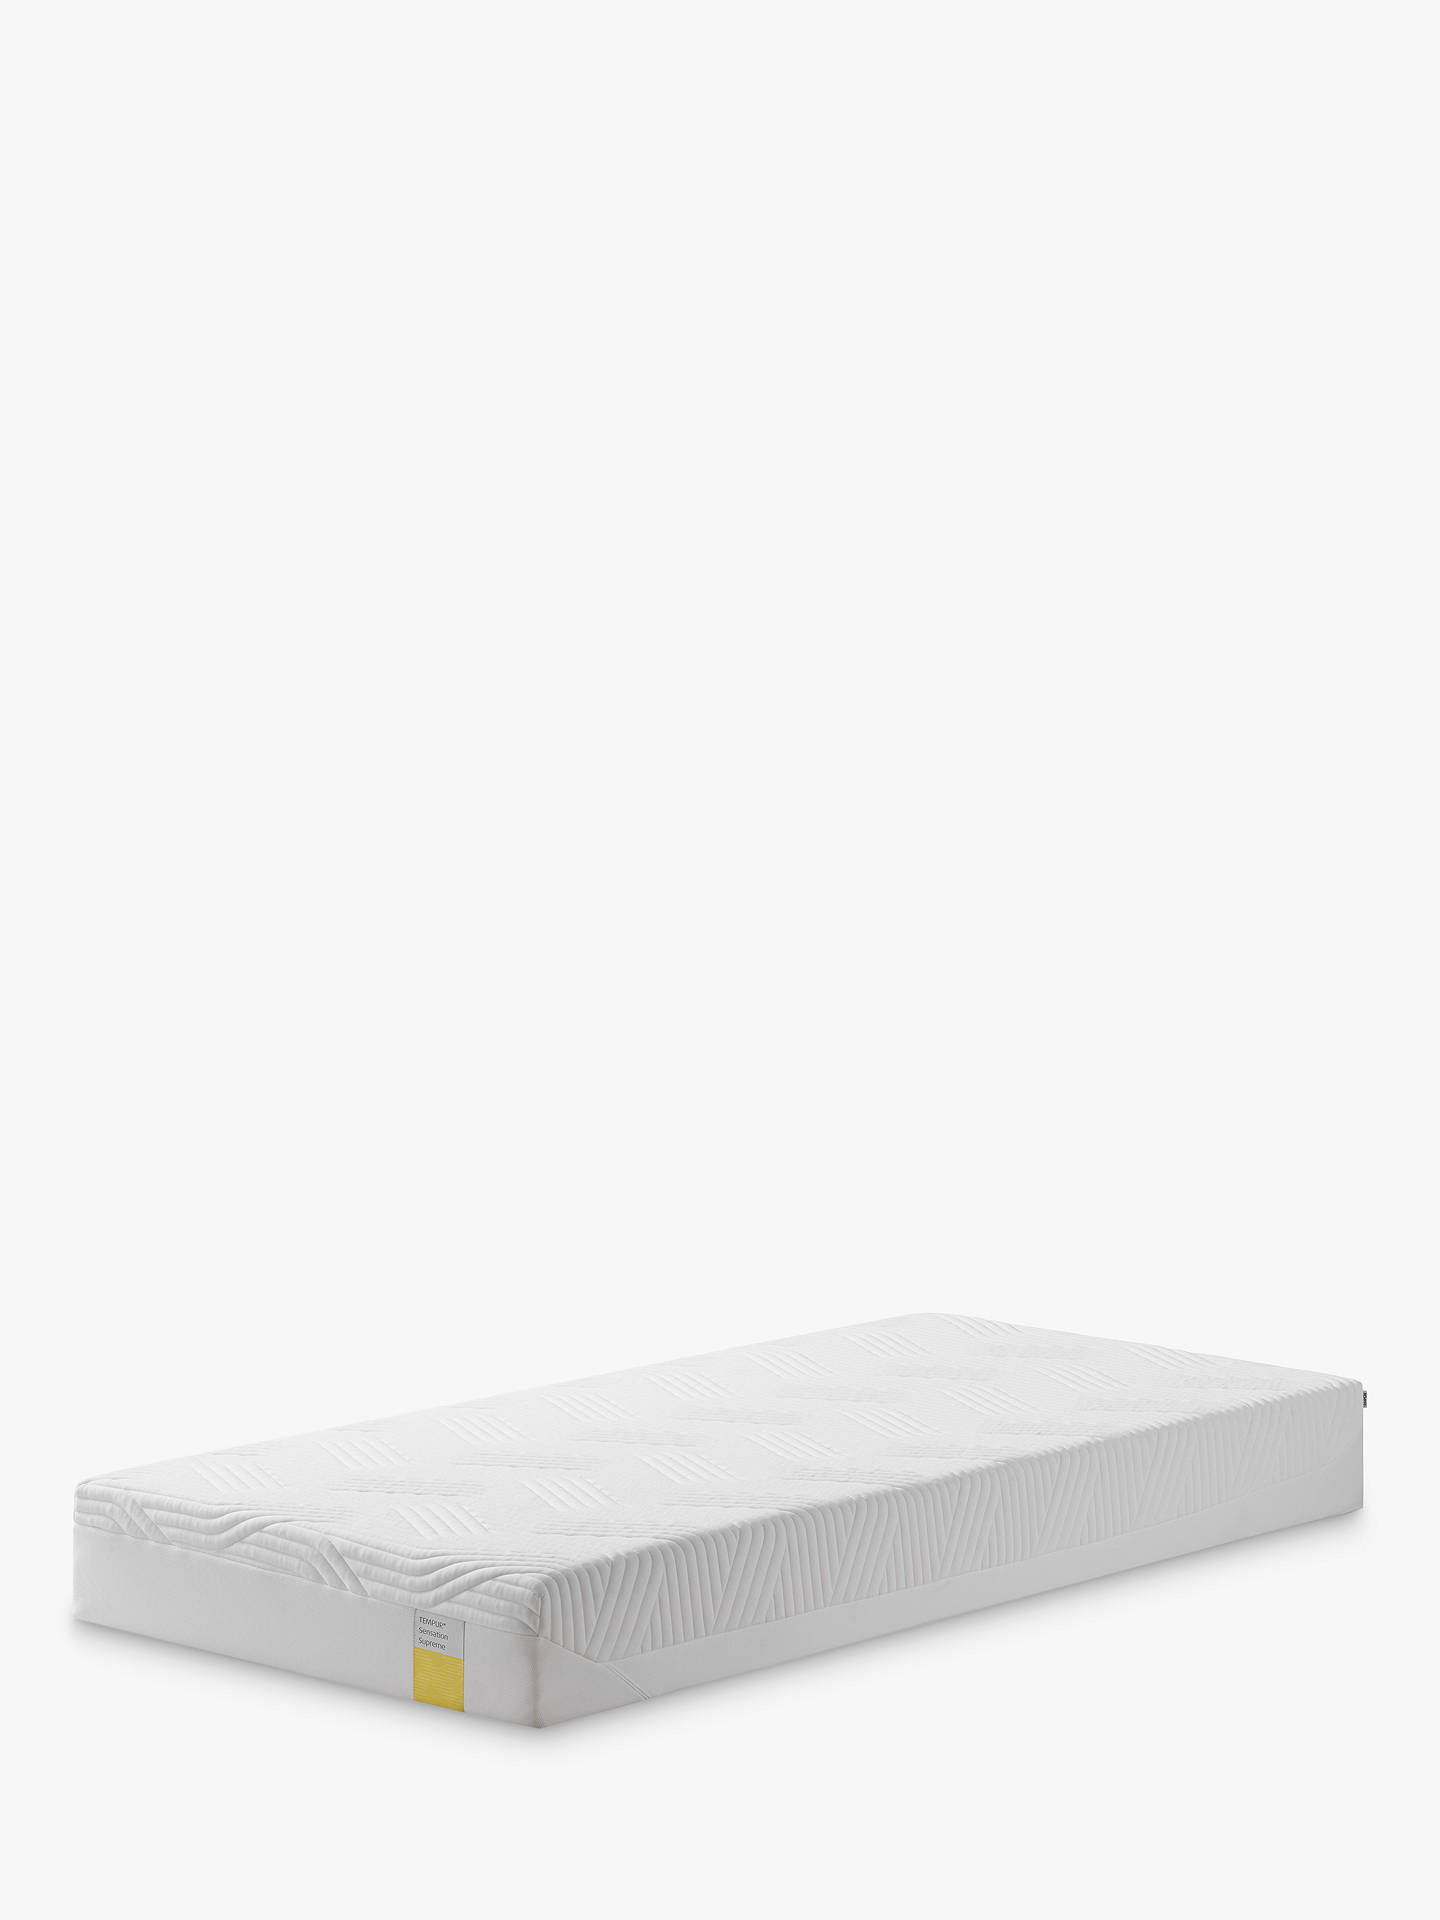 Buy Tempur Sensation Supreme 21 Memory Foam Mattress, Firm Tension, Extra Long Single Online at johnlewis.com